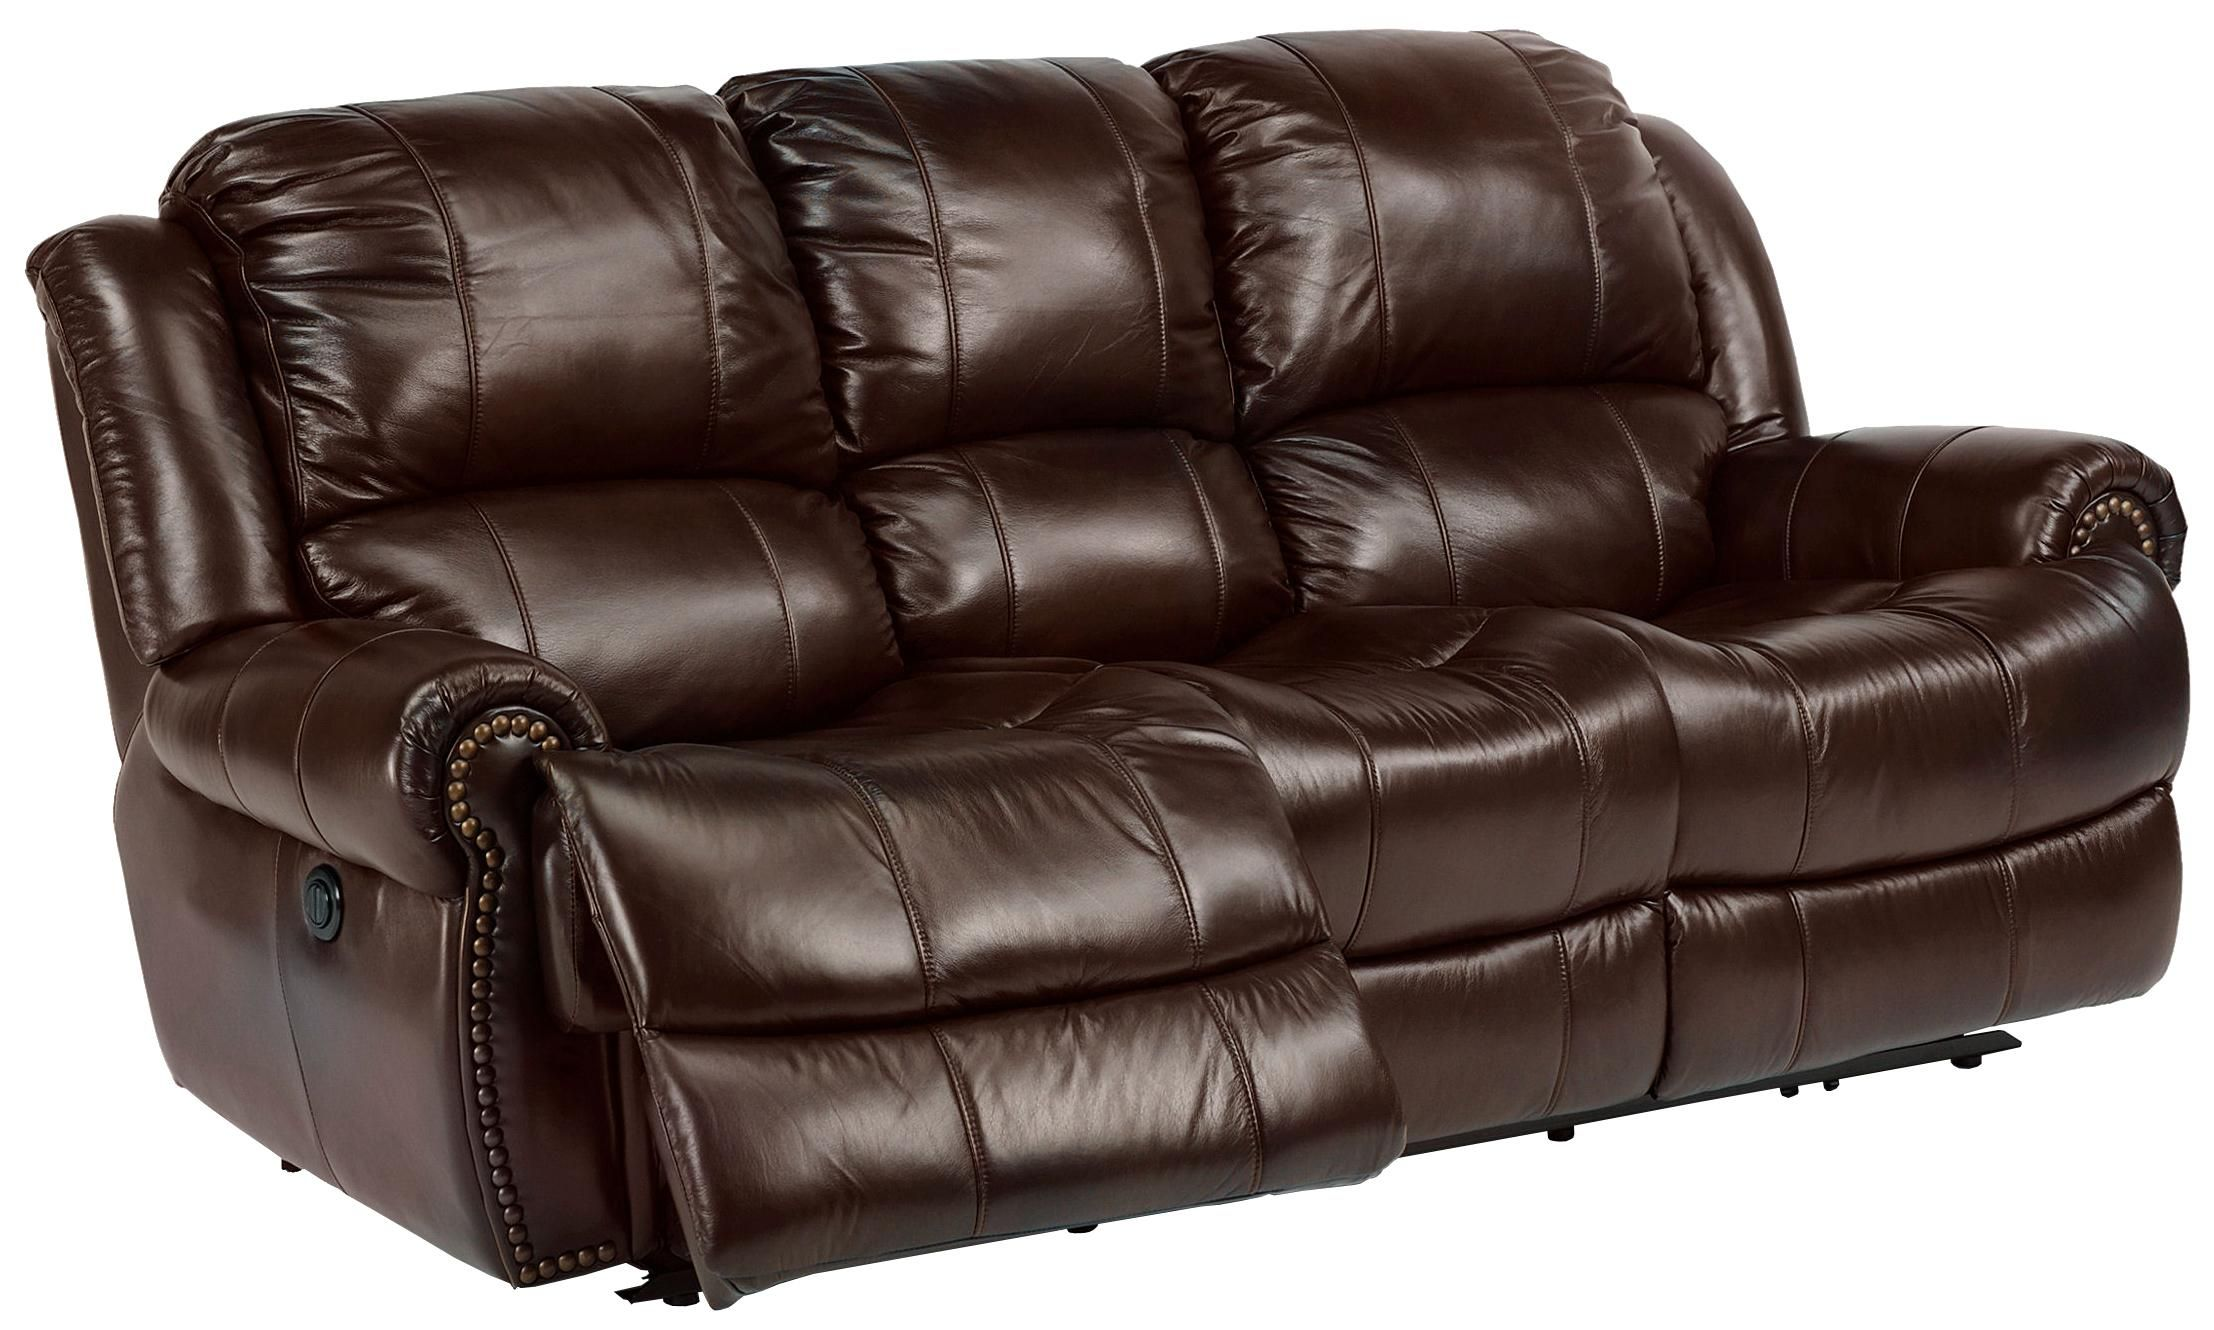 leather cleaner for sofa asda best sectional brands flexsteel cleaning awesome home